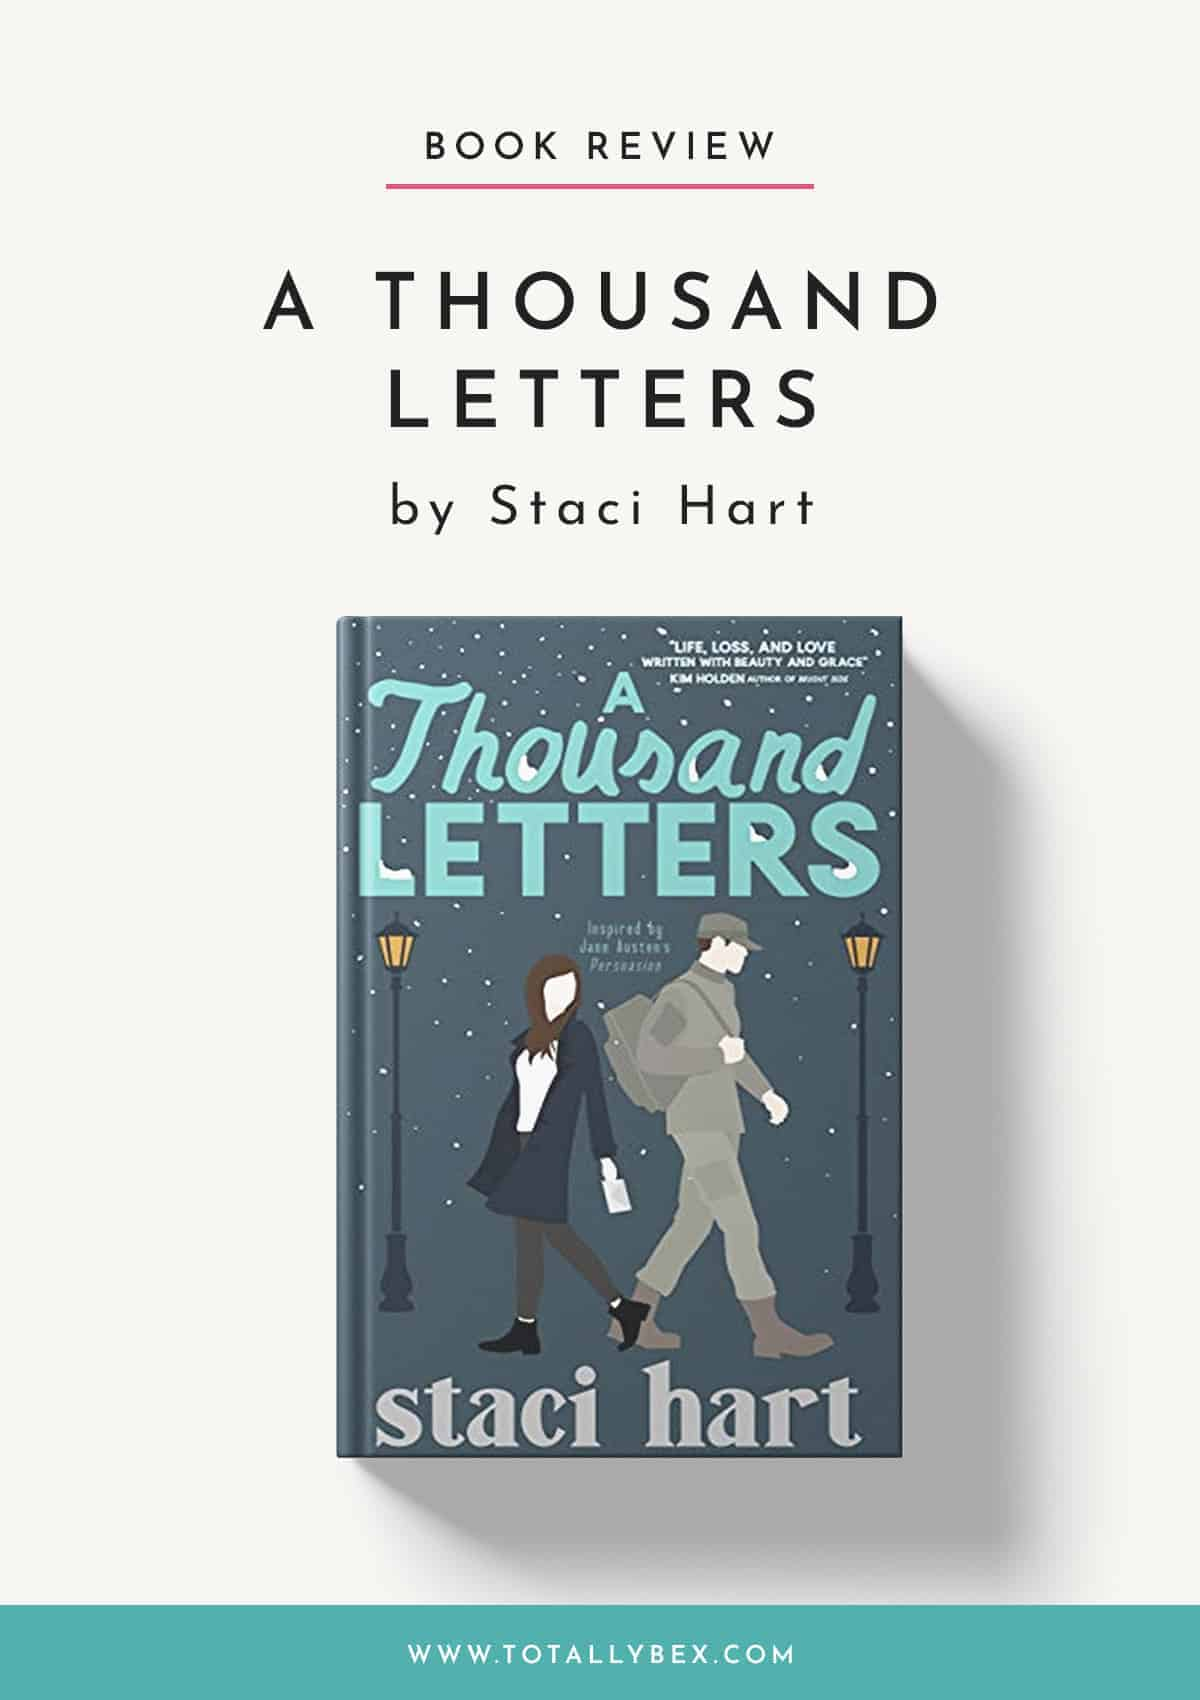 A Thousand Letters by Staci Hart-Book Review